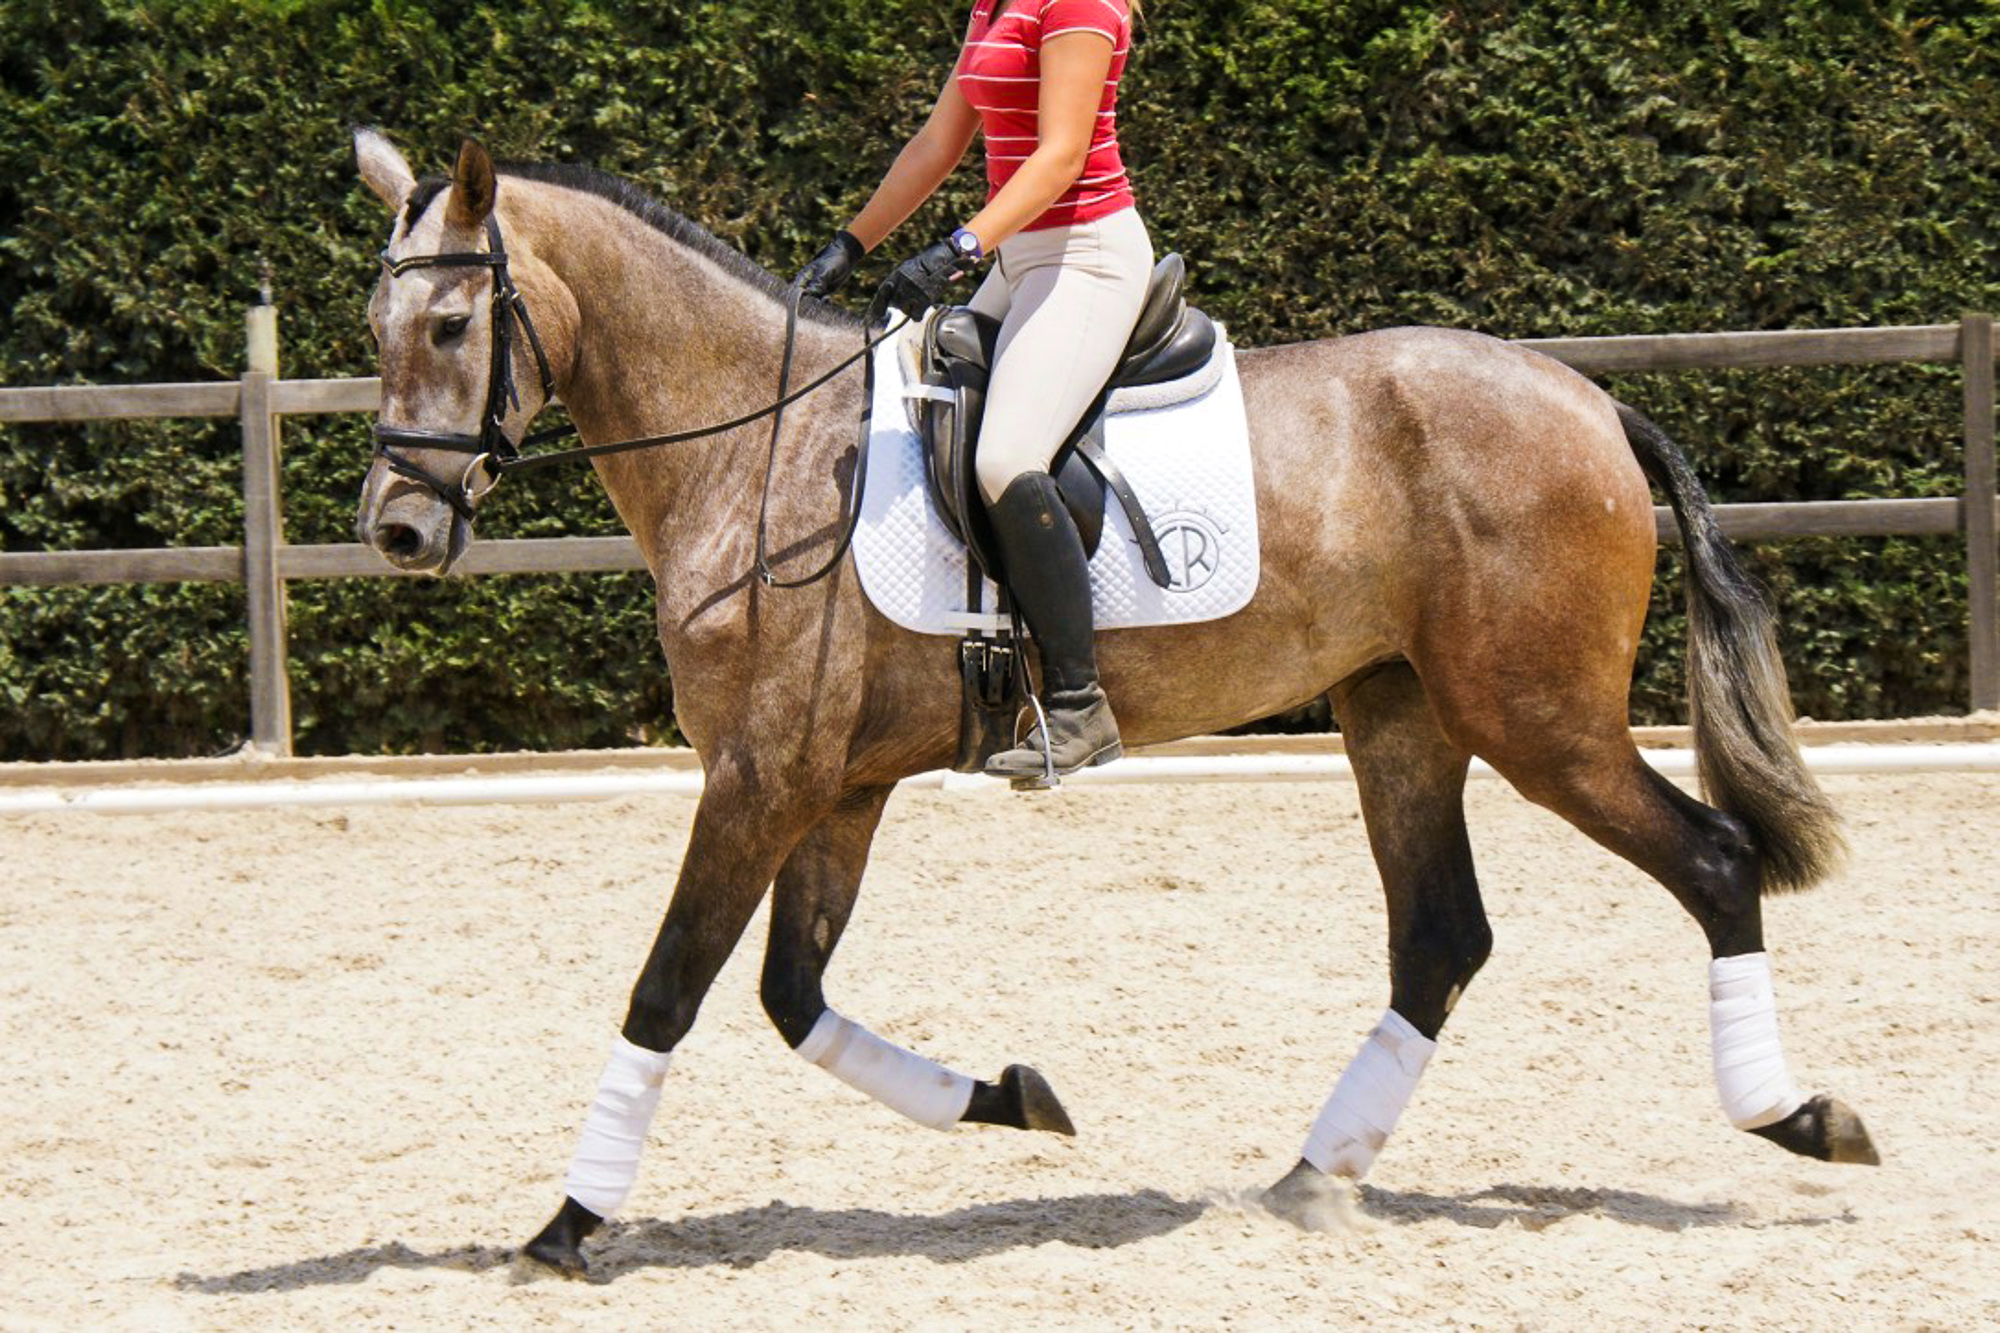 At 16.3hh / 170 cm, Hiedra VG is exceptionally tall for being a PRE